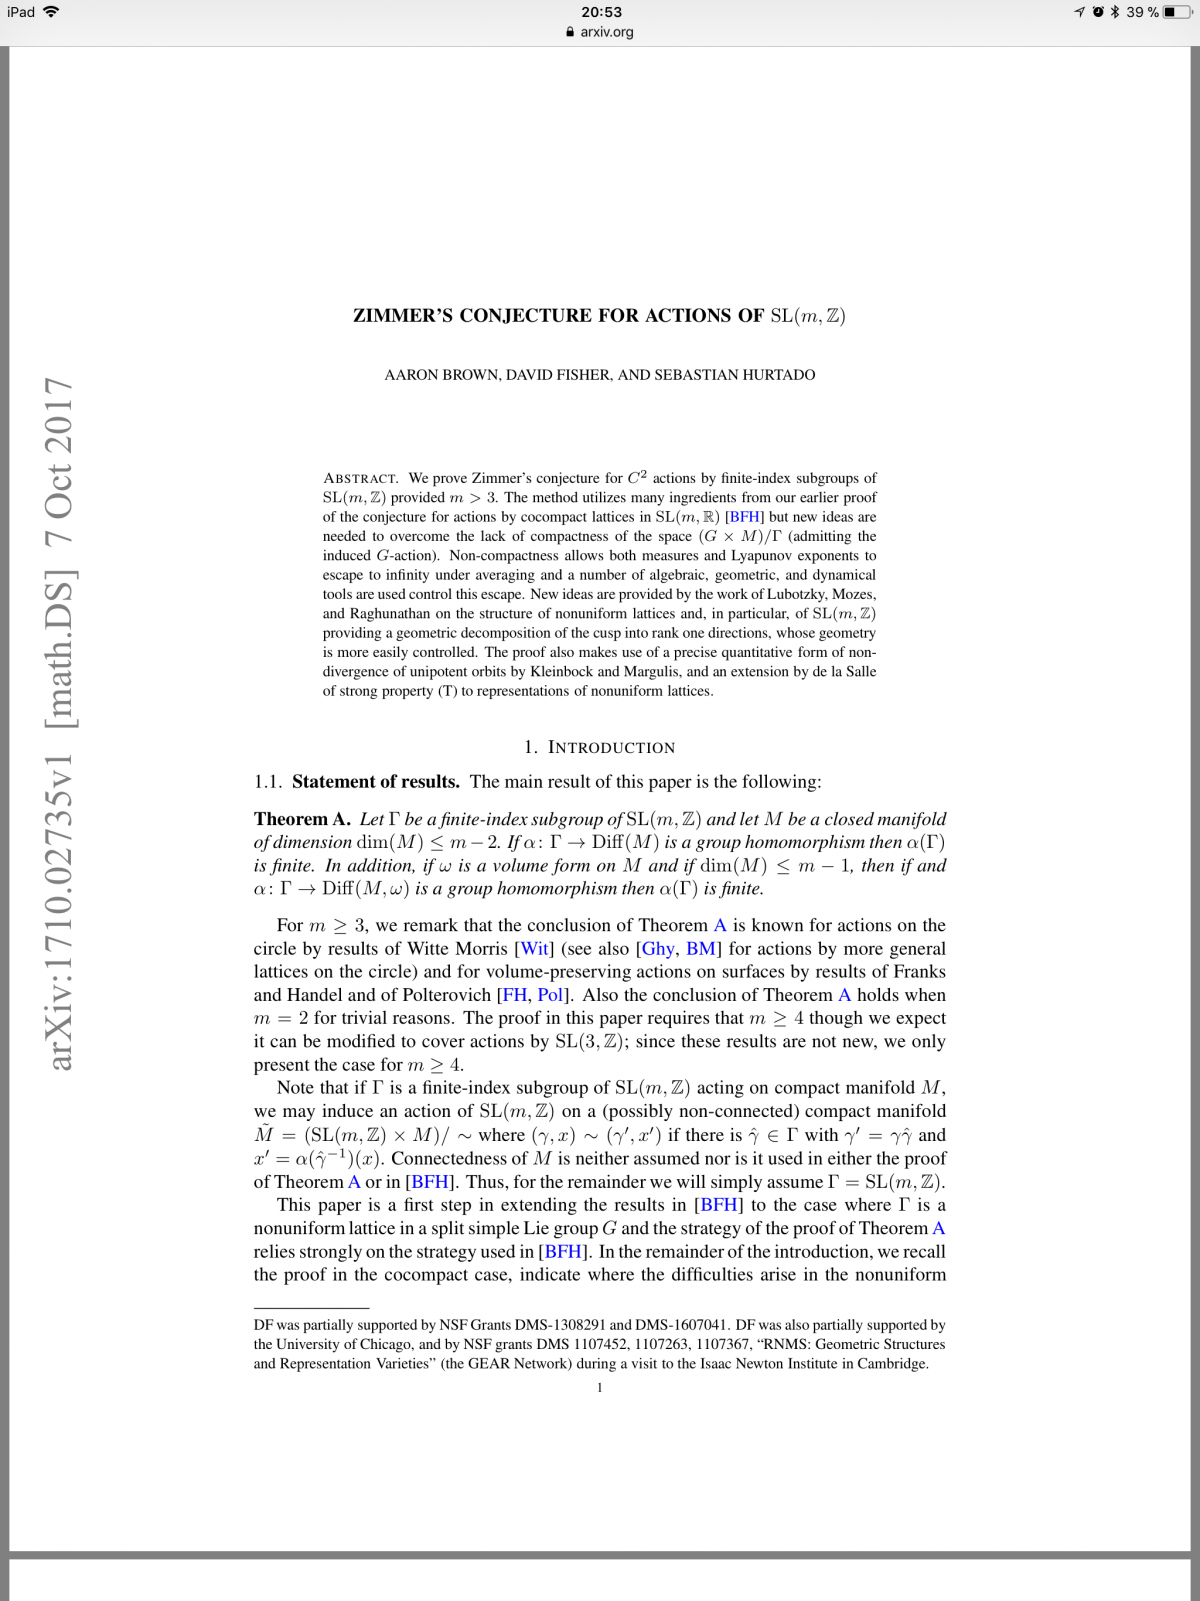 What\'s new on the ArXiv: Zimmer\'s conjecture for actions of SL(m,Z ...